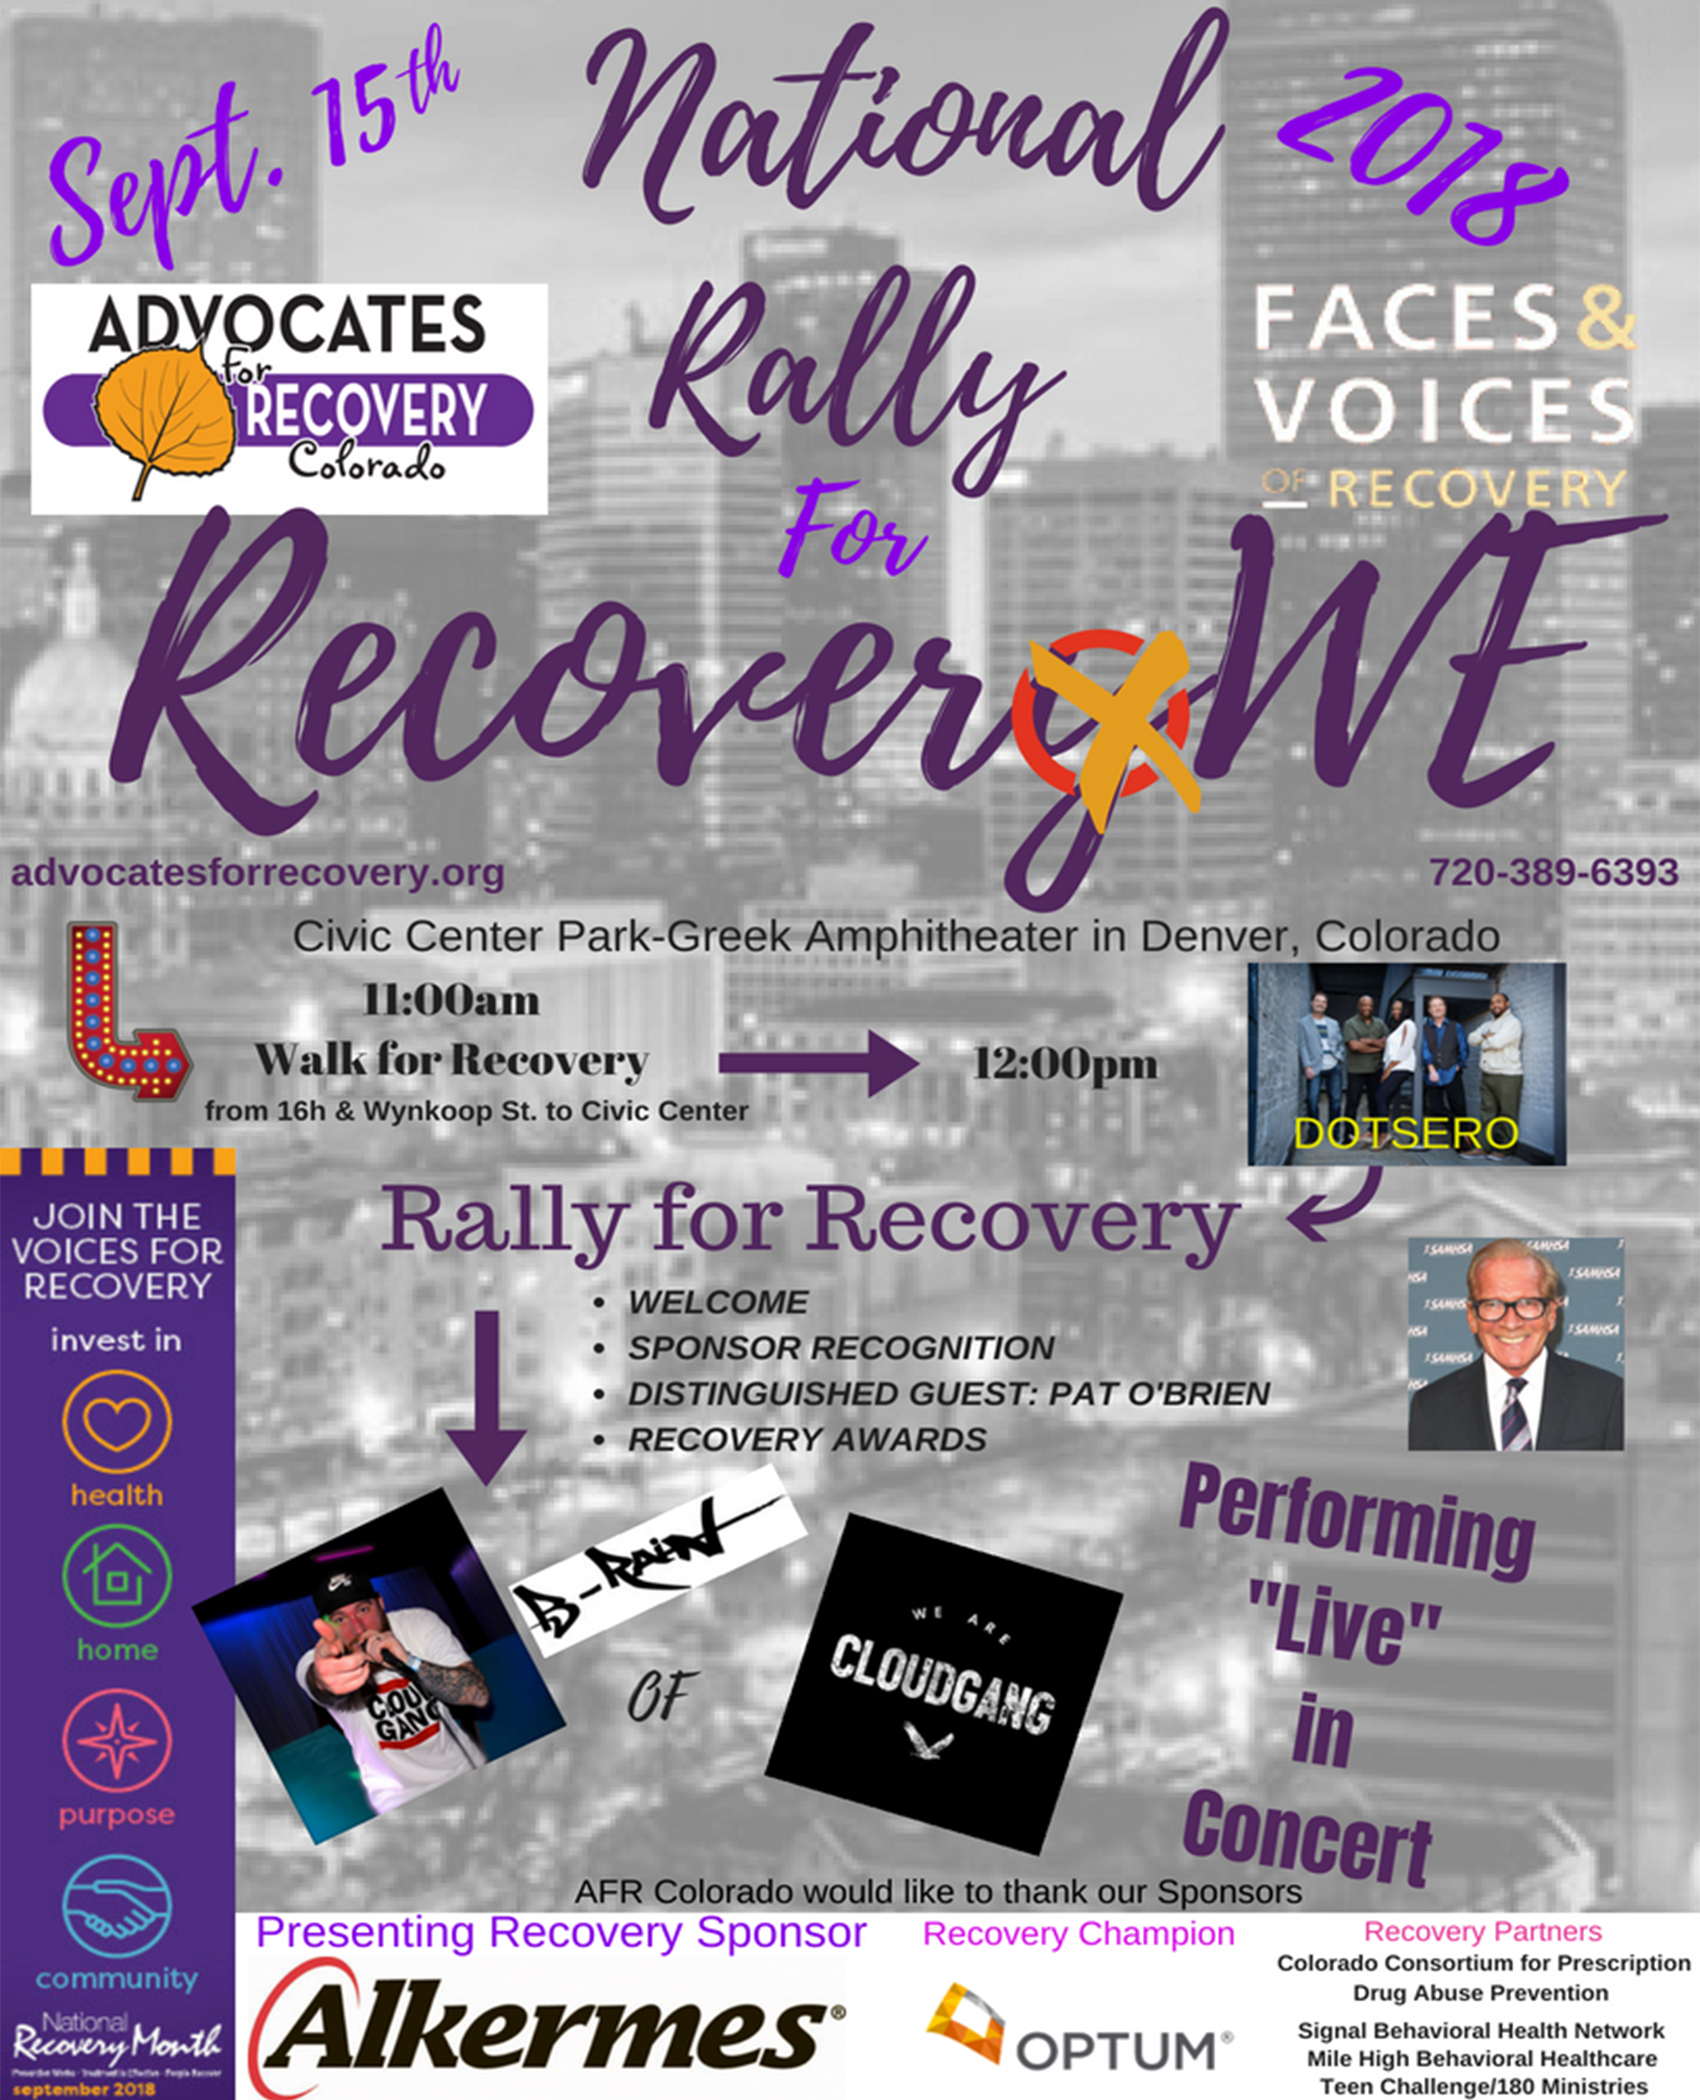 2018 recovery rally with advocates for recovery colorado